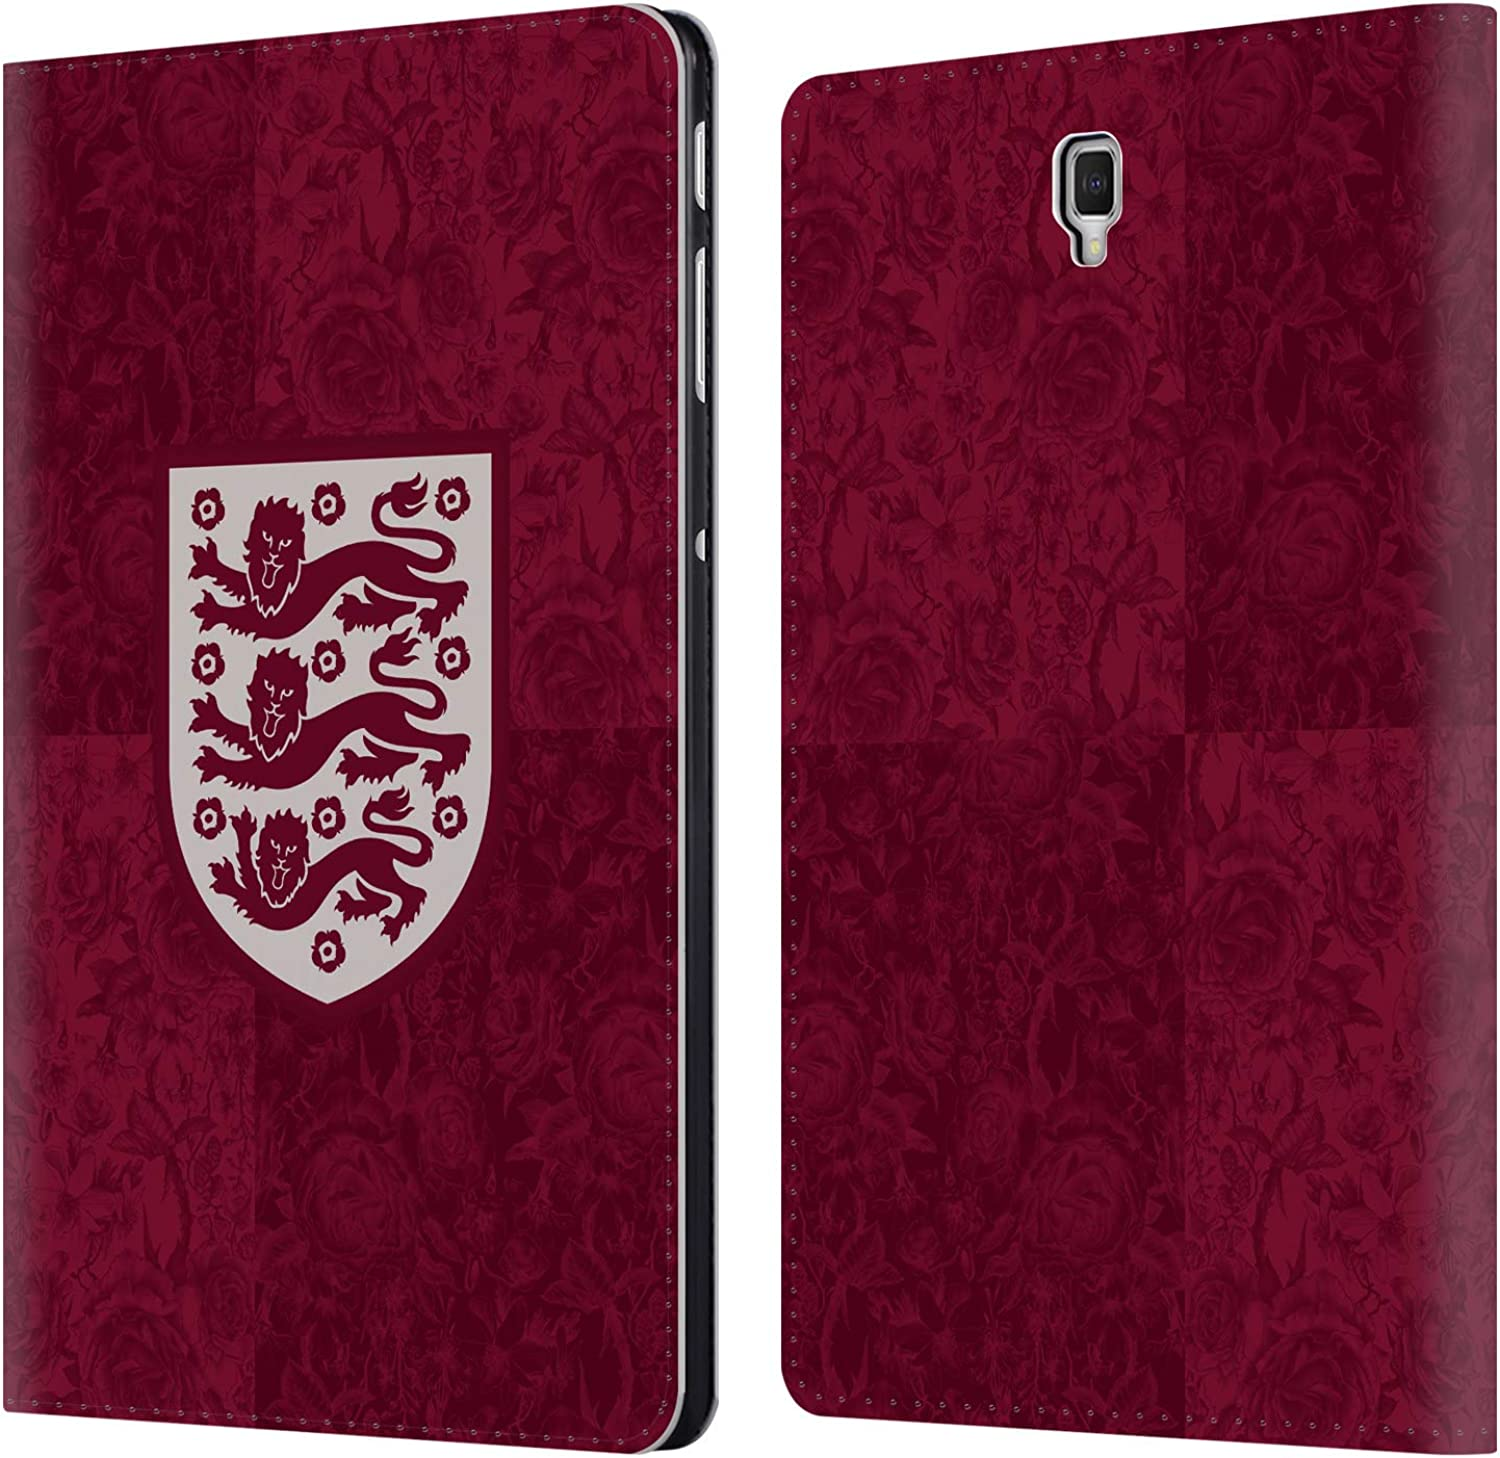 Official England National Football Team Away Kit 2019 20 Women's World Cup Leather Book Wallet Case Cover Compatible for Samsung Galaxy Tab S4 10.5 (2018)